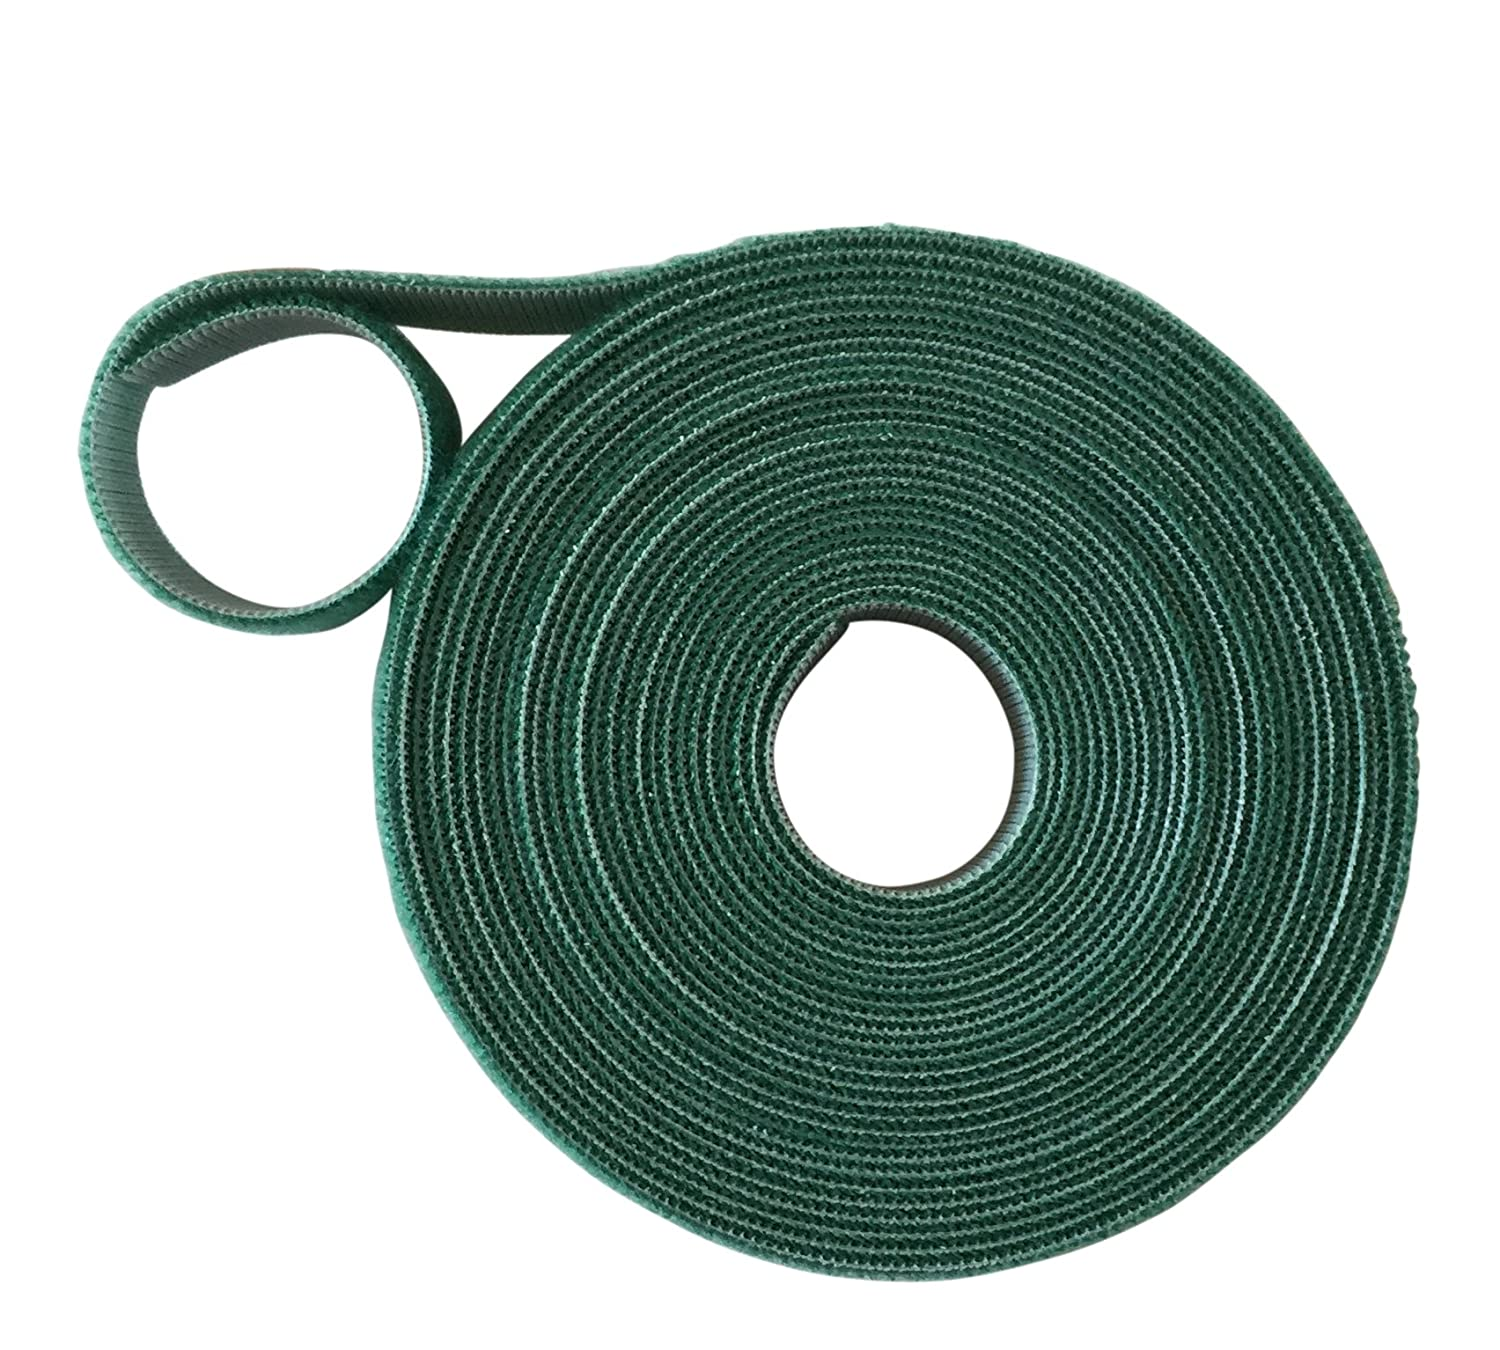 VELCRO® Brand Hook and loop ONE-WRAP® back to back Strapping in GREEN 2CM Wide X 1 Metre Long VELCRO®